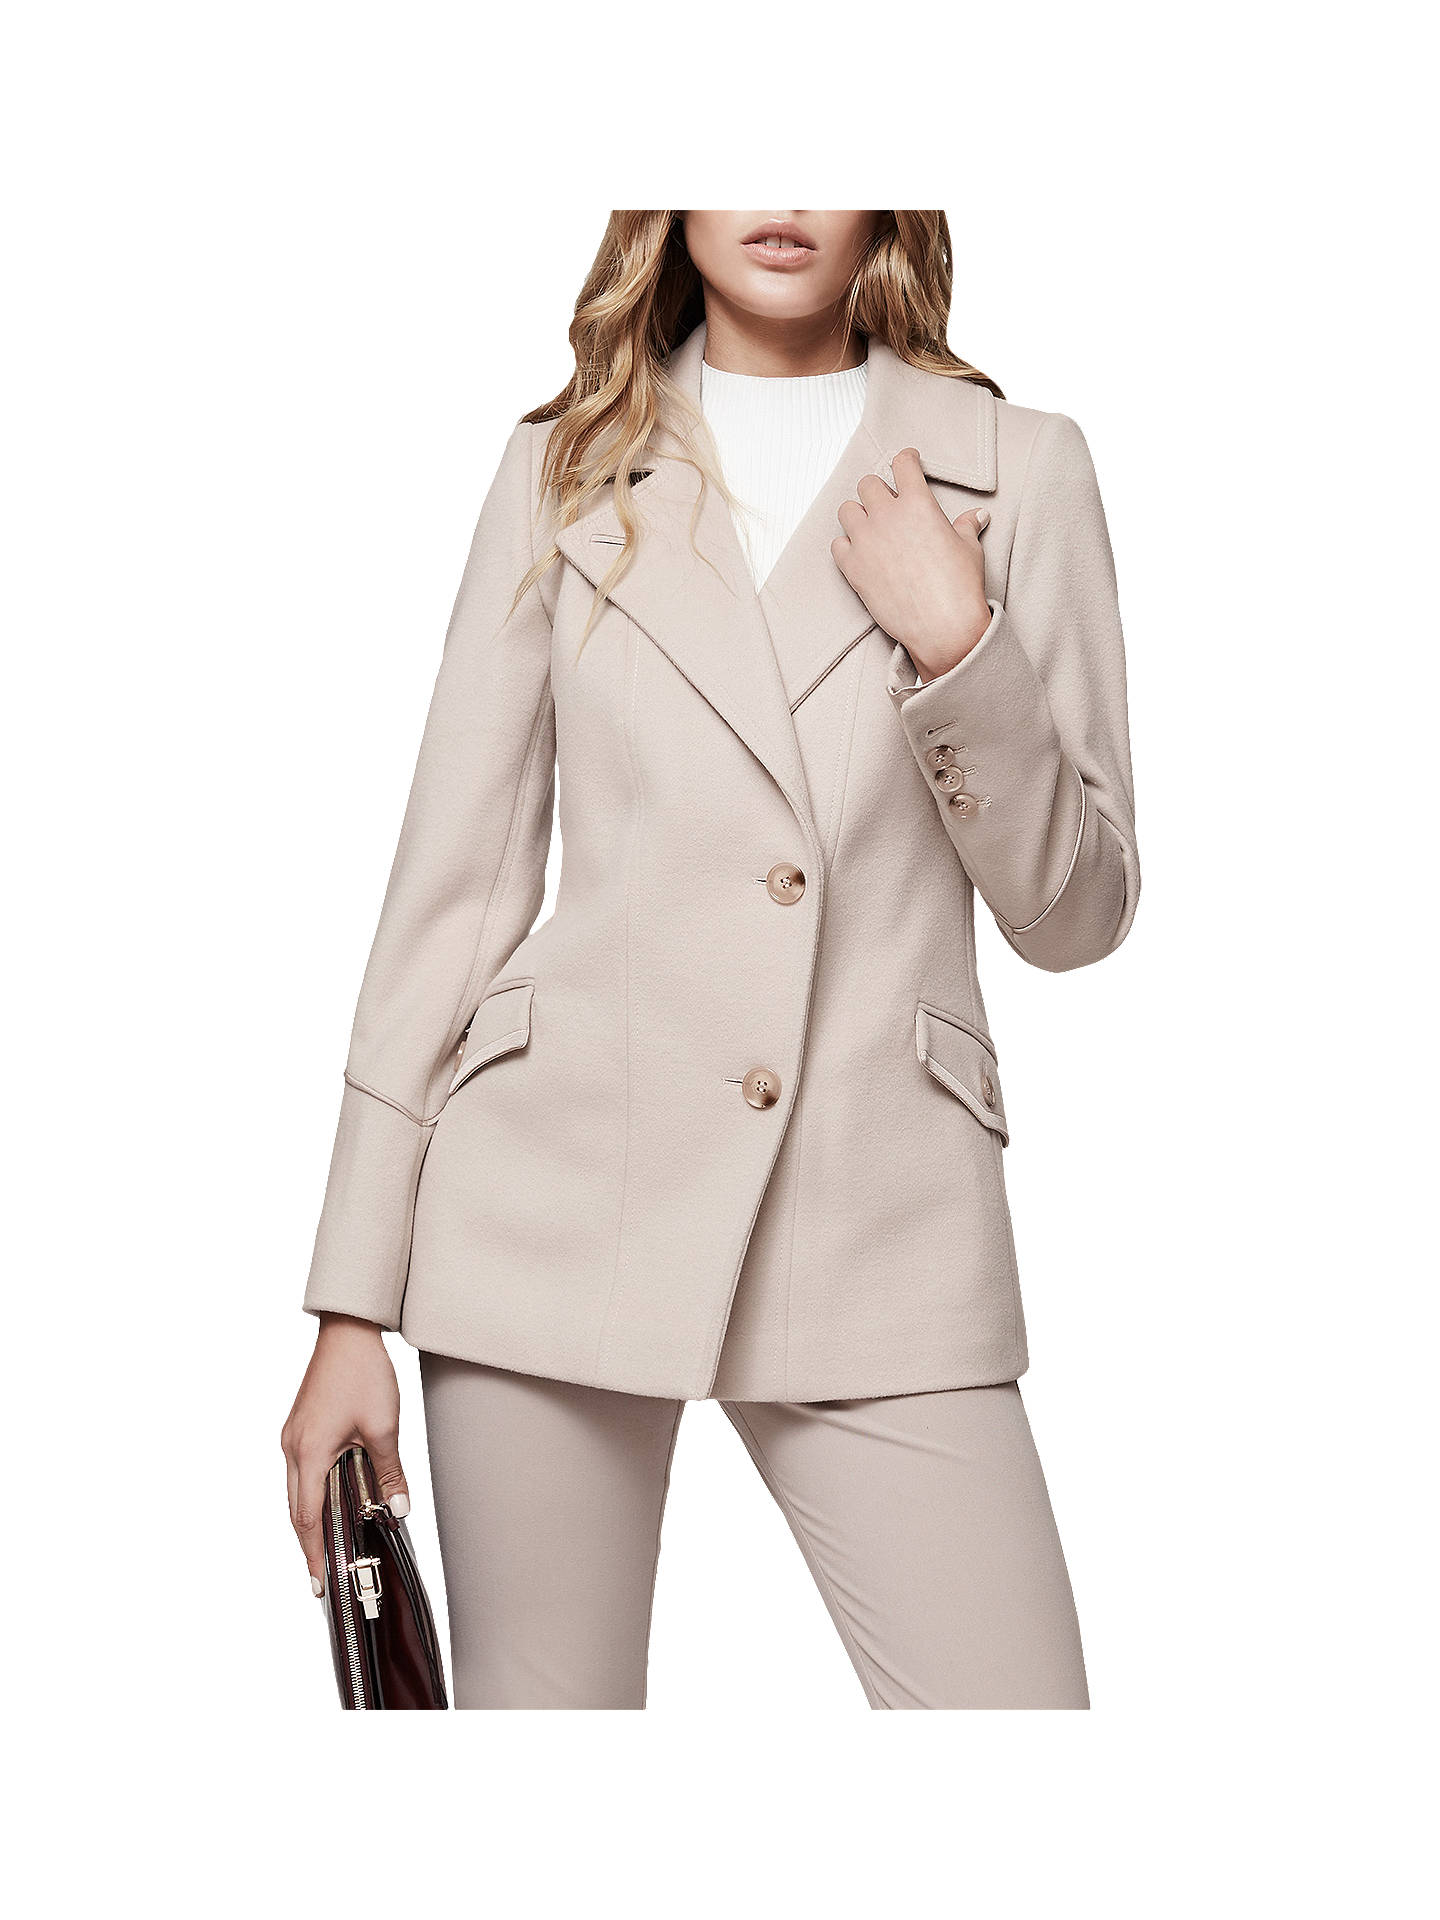 520c47658546b Buy Reiss Lillie Long Sleeve Belted Jacket